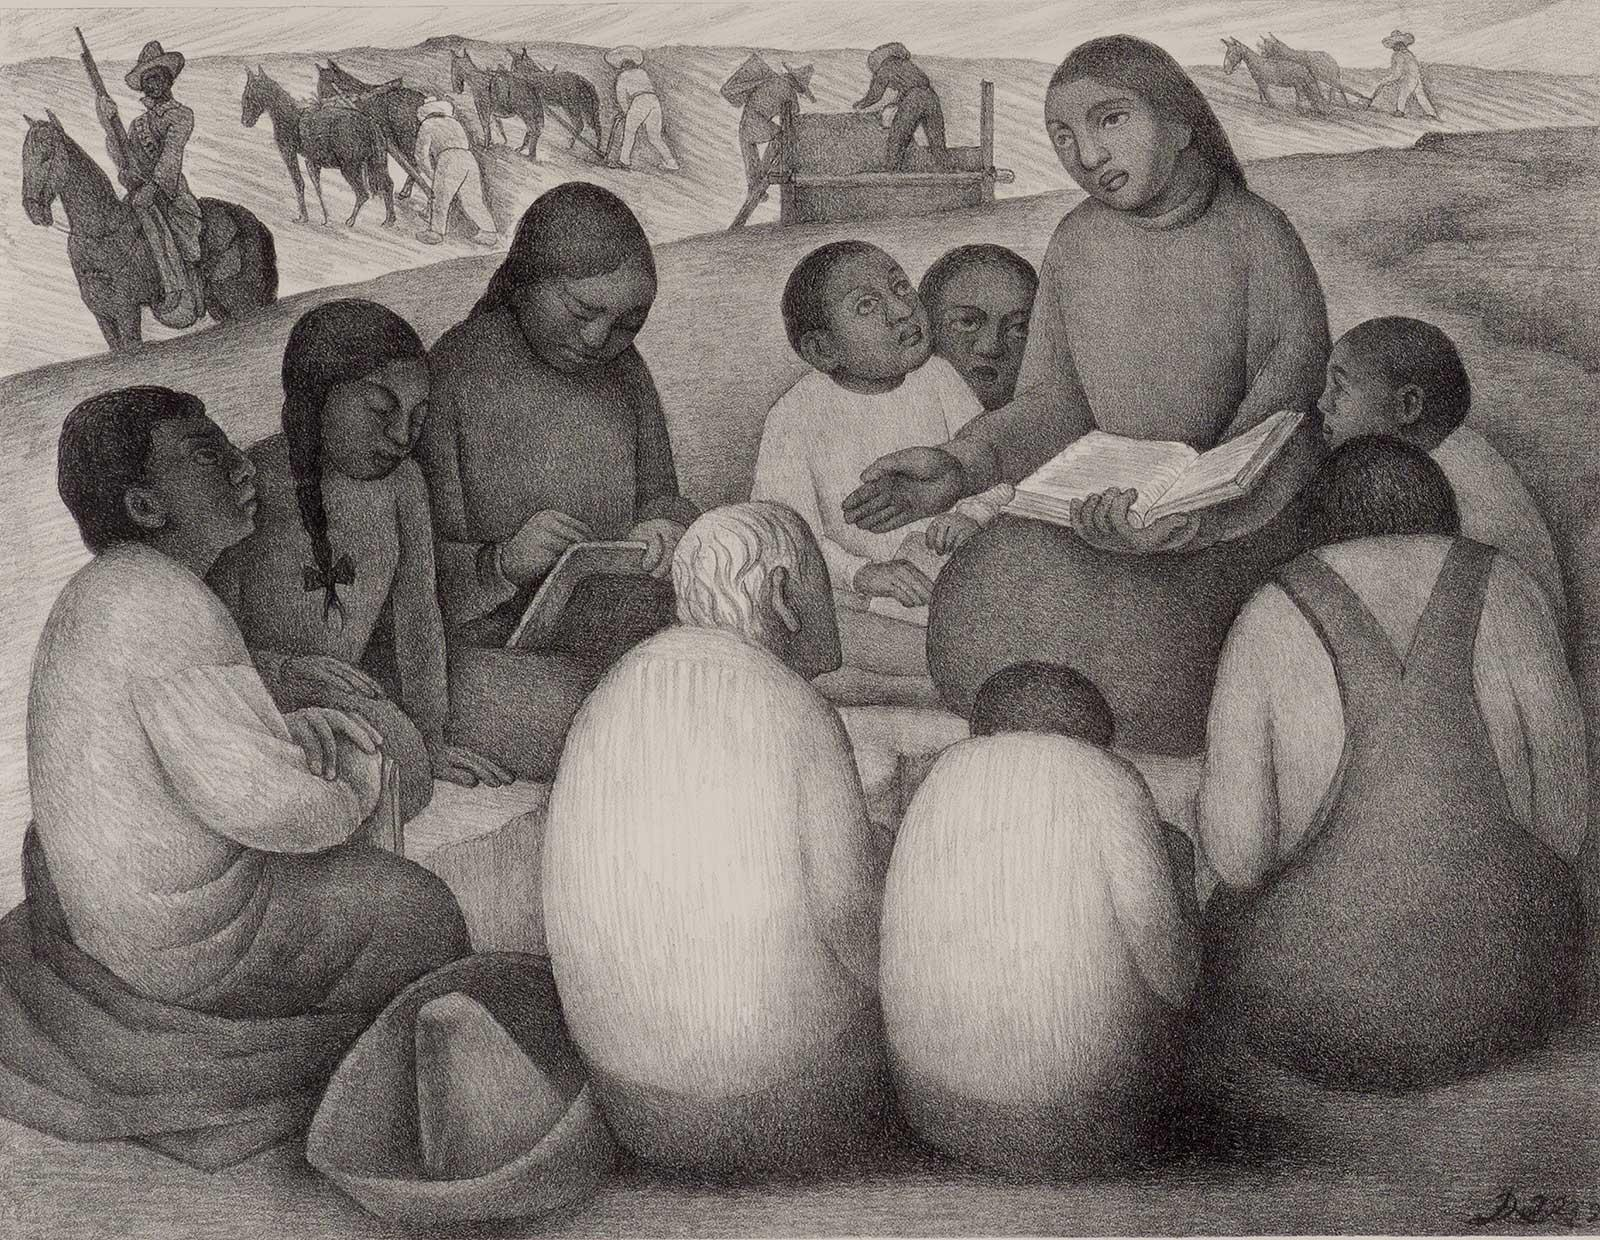 Open Air School (iconic image of indigenous teacher by Mexican muralist)